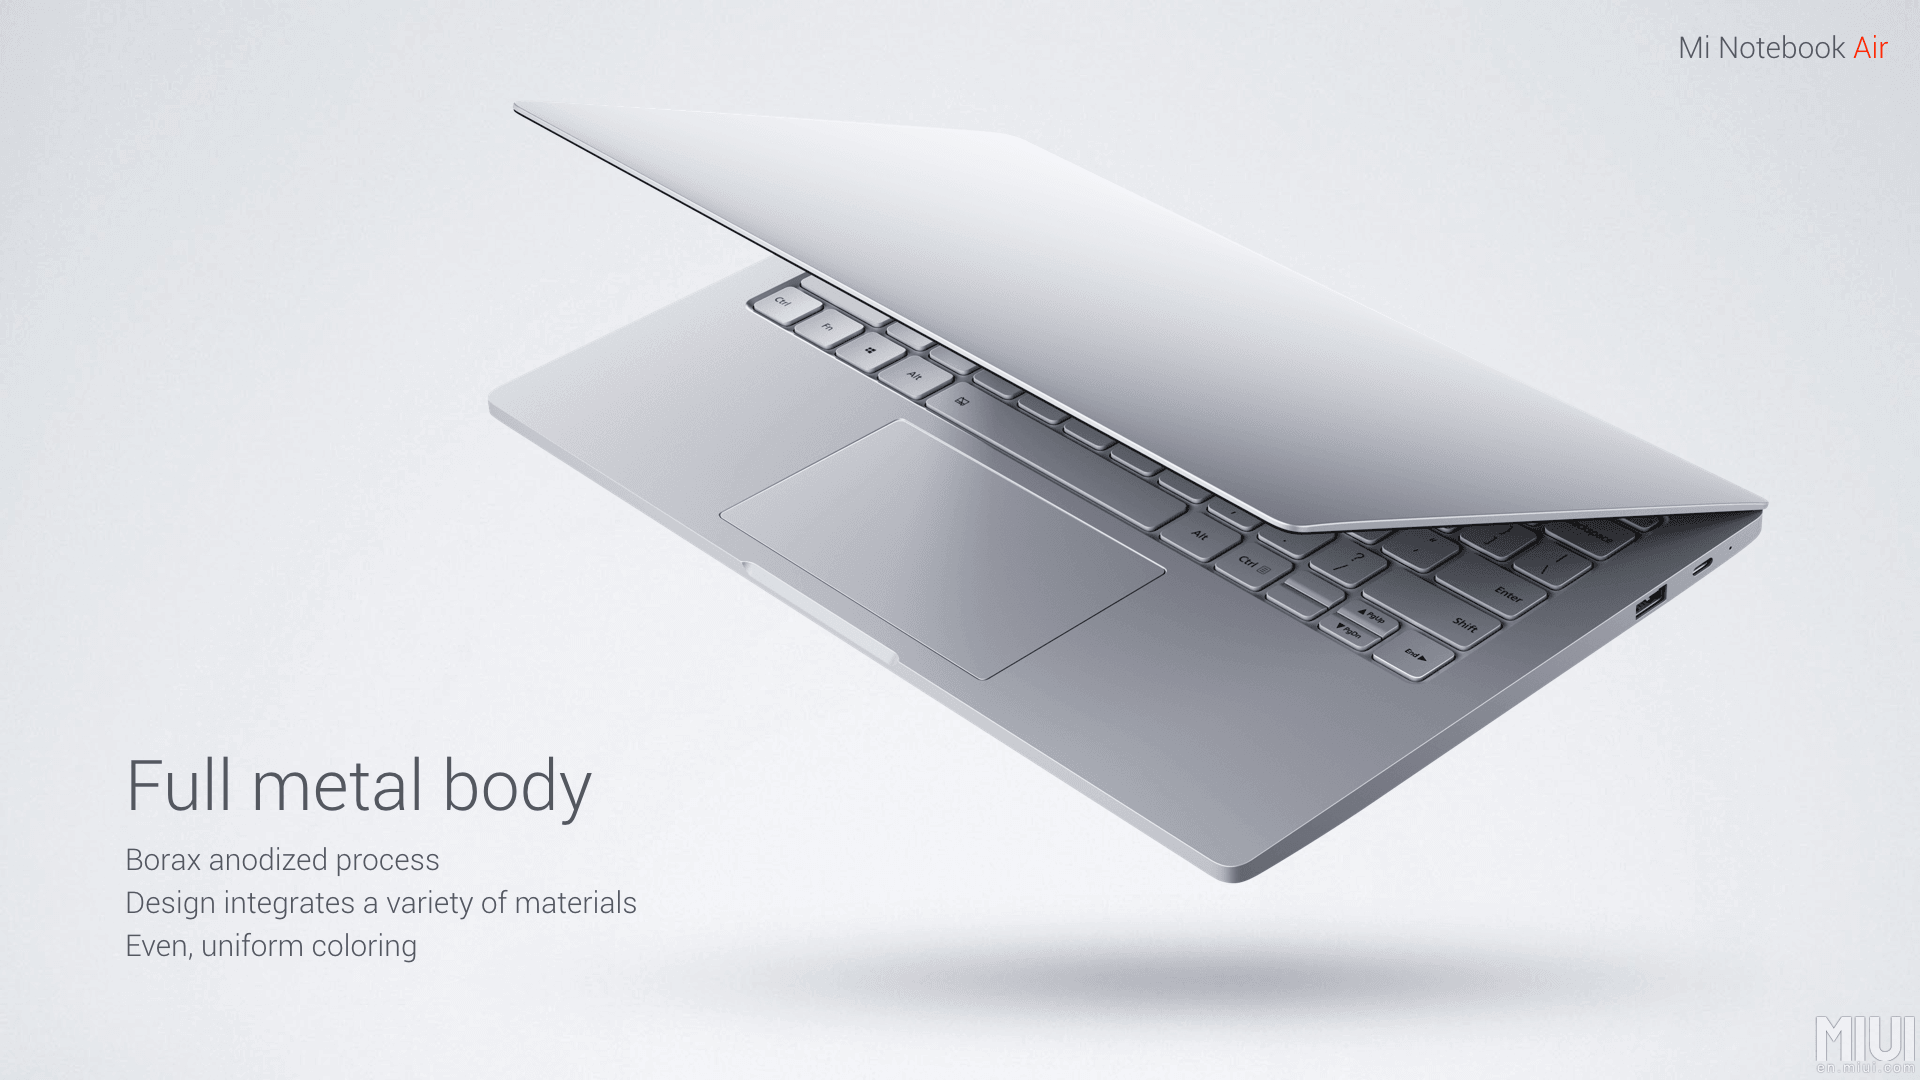 Mi Notebook Air 3